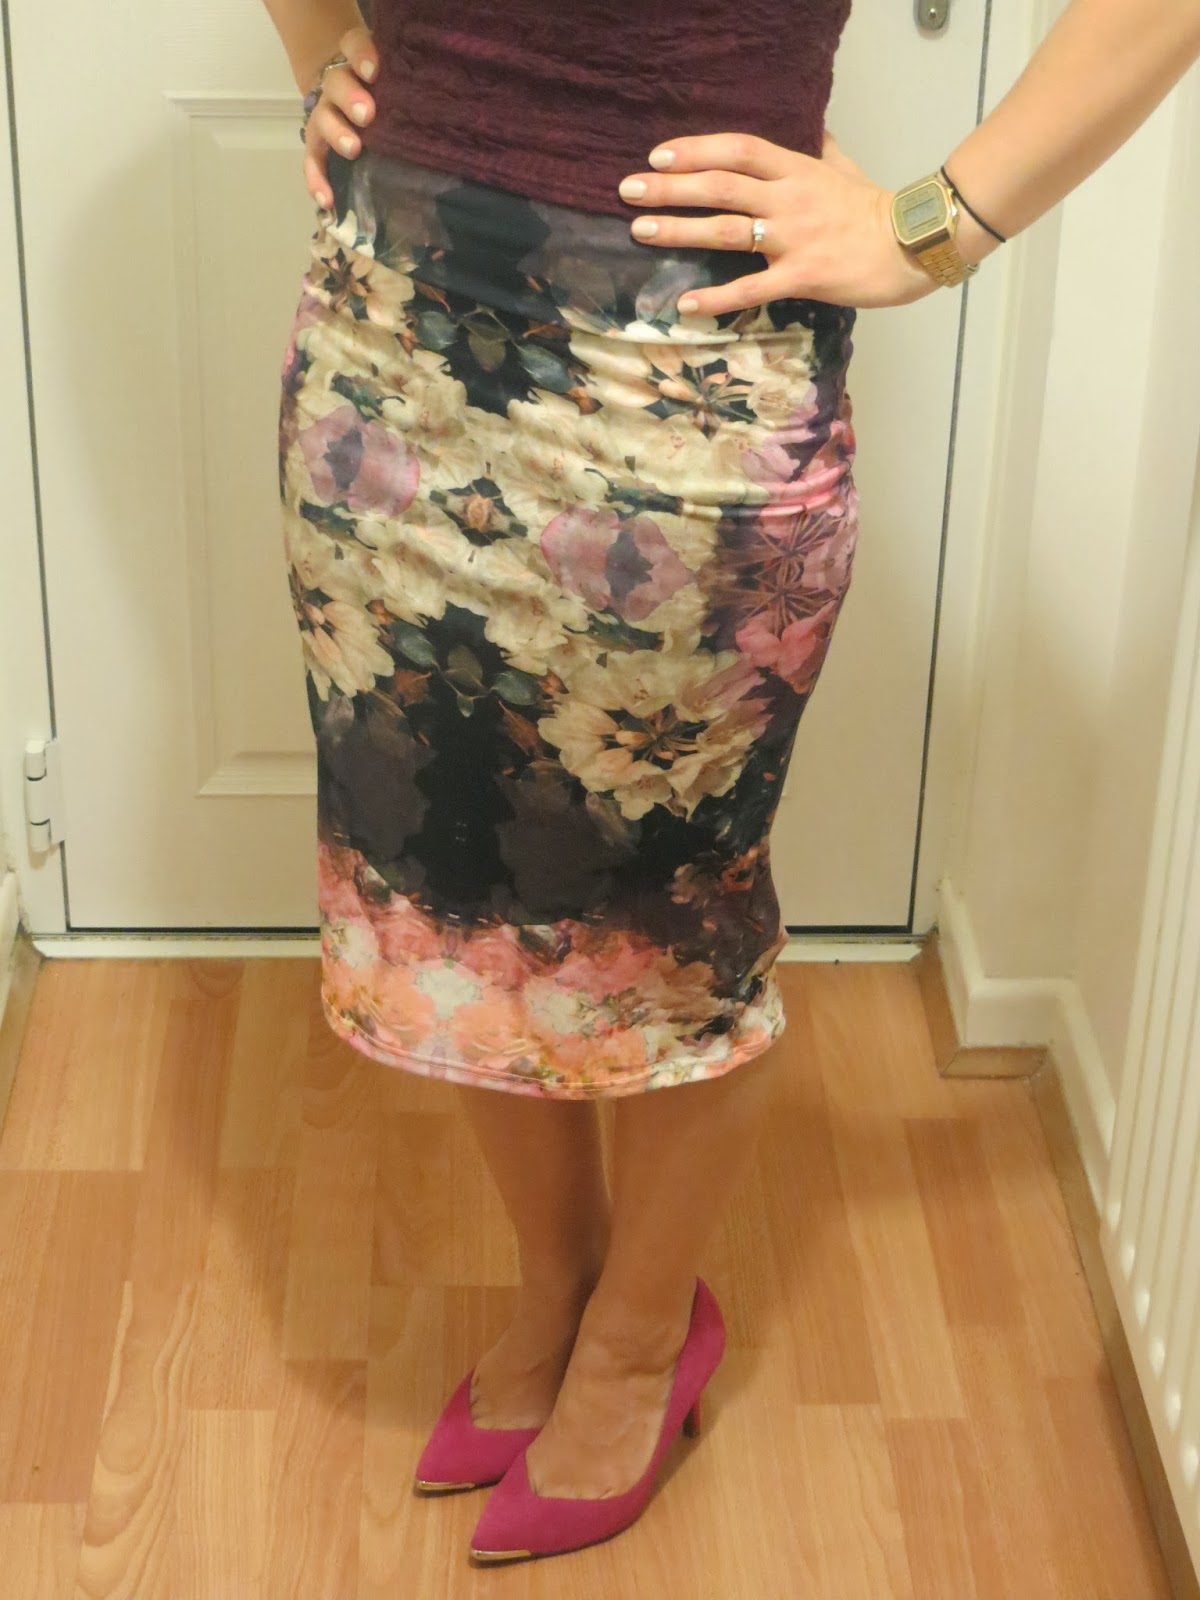 Topshop, fashion, OOTD, outfit, floral, flowers, pencil skirt, crop top, girl, blogger, shoes, new look, pink, pretty